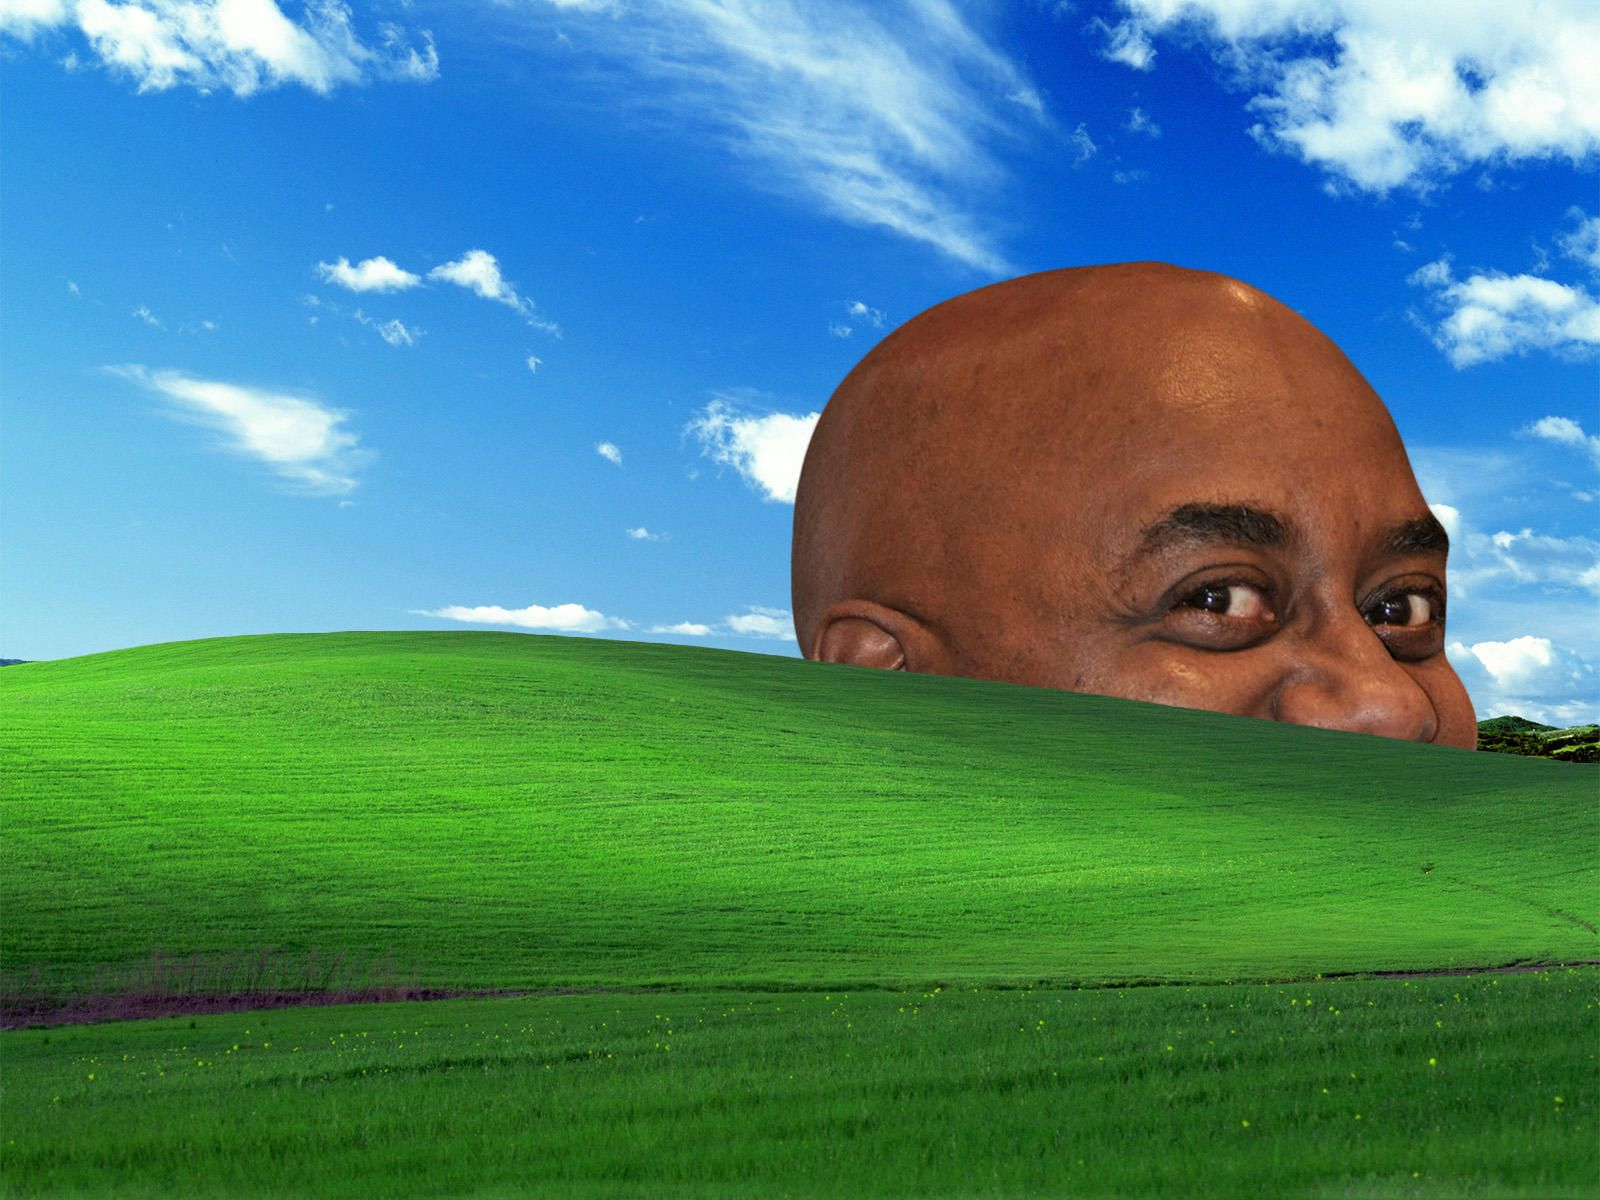 Ainsley Bliss Windows Xp Bliss Wallpaper Know Your Meme Laptop Wallpaper Desktop Wallpapers Meme Background Background